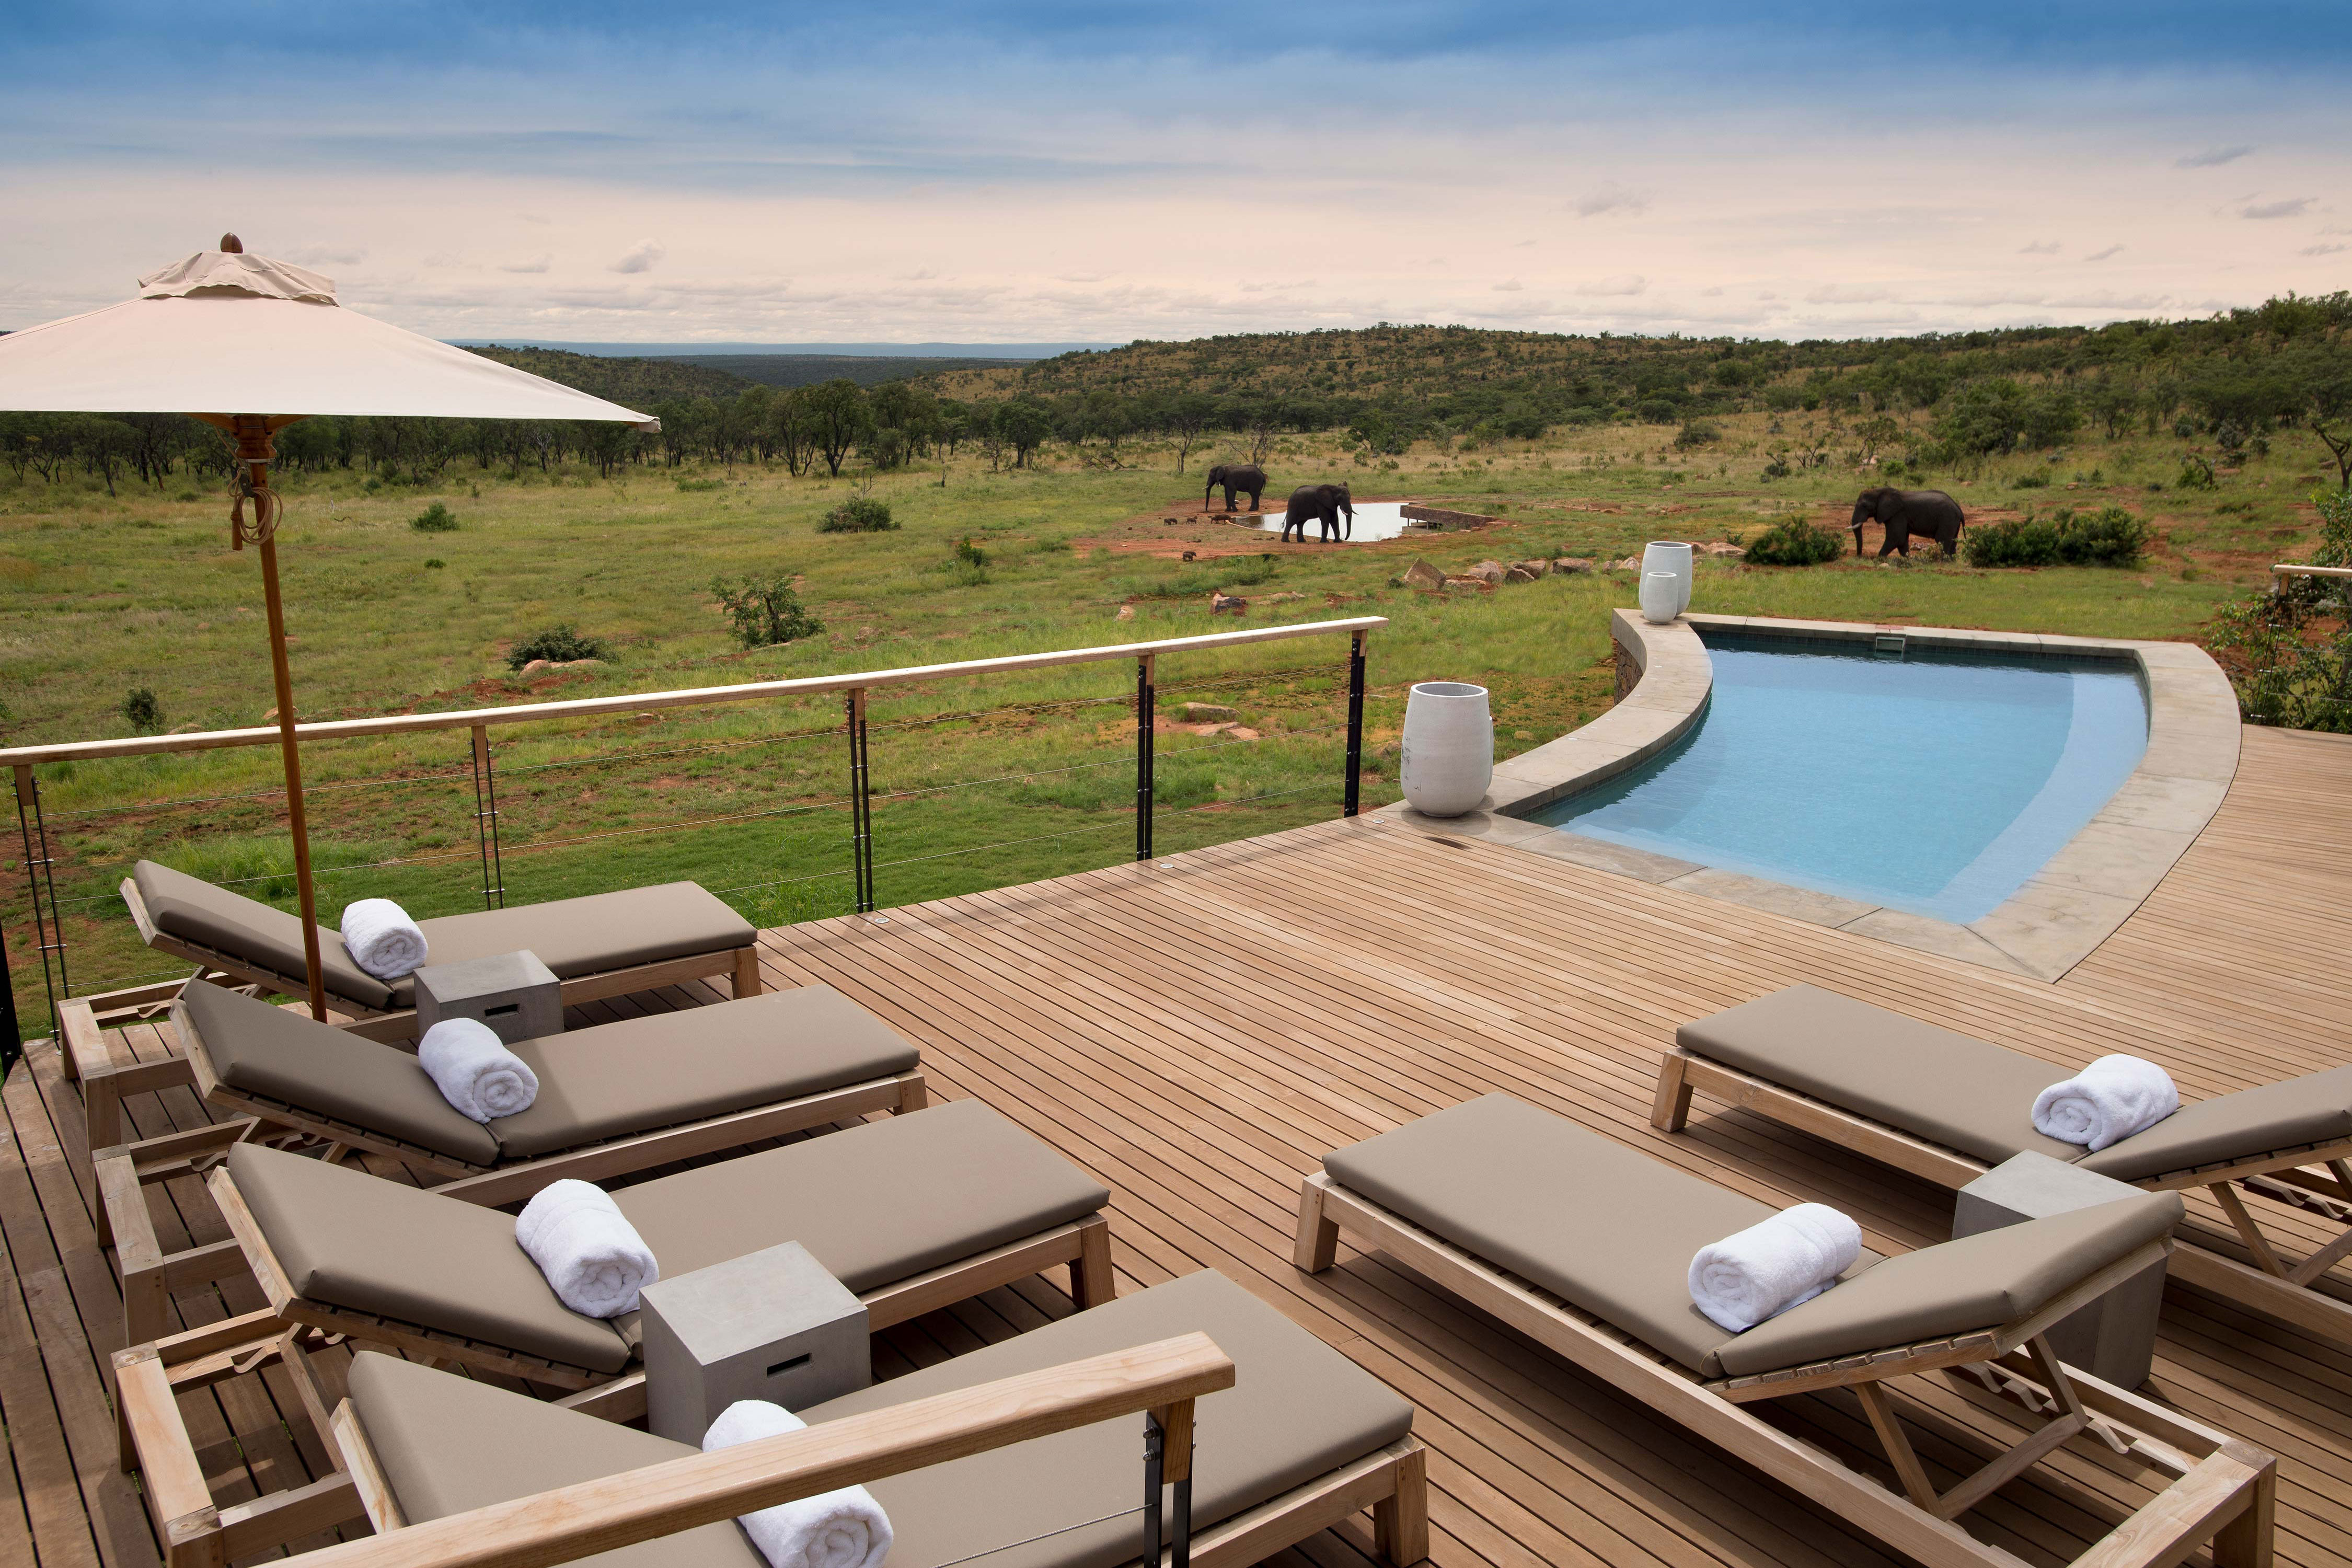 Luxury villas for family holidays | Mhondoro, South Africa | Mr & Mrs Smith Editorial